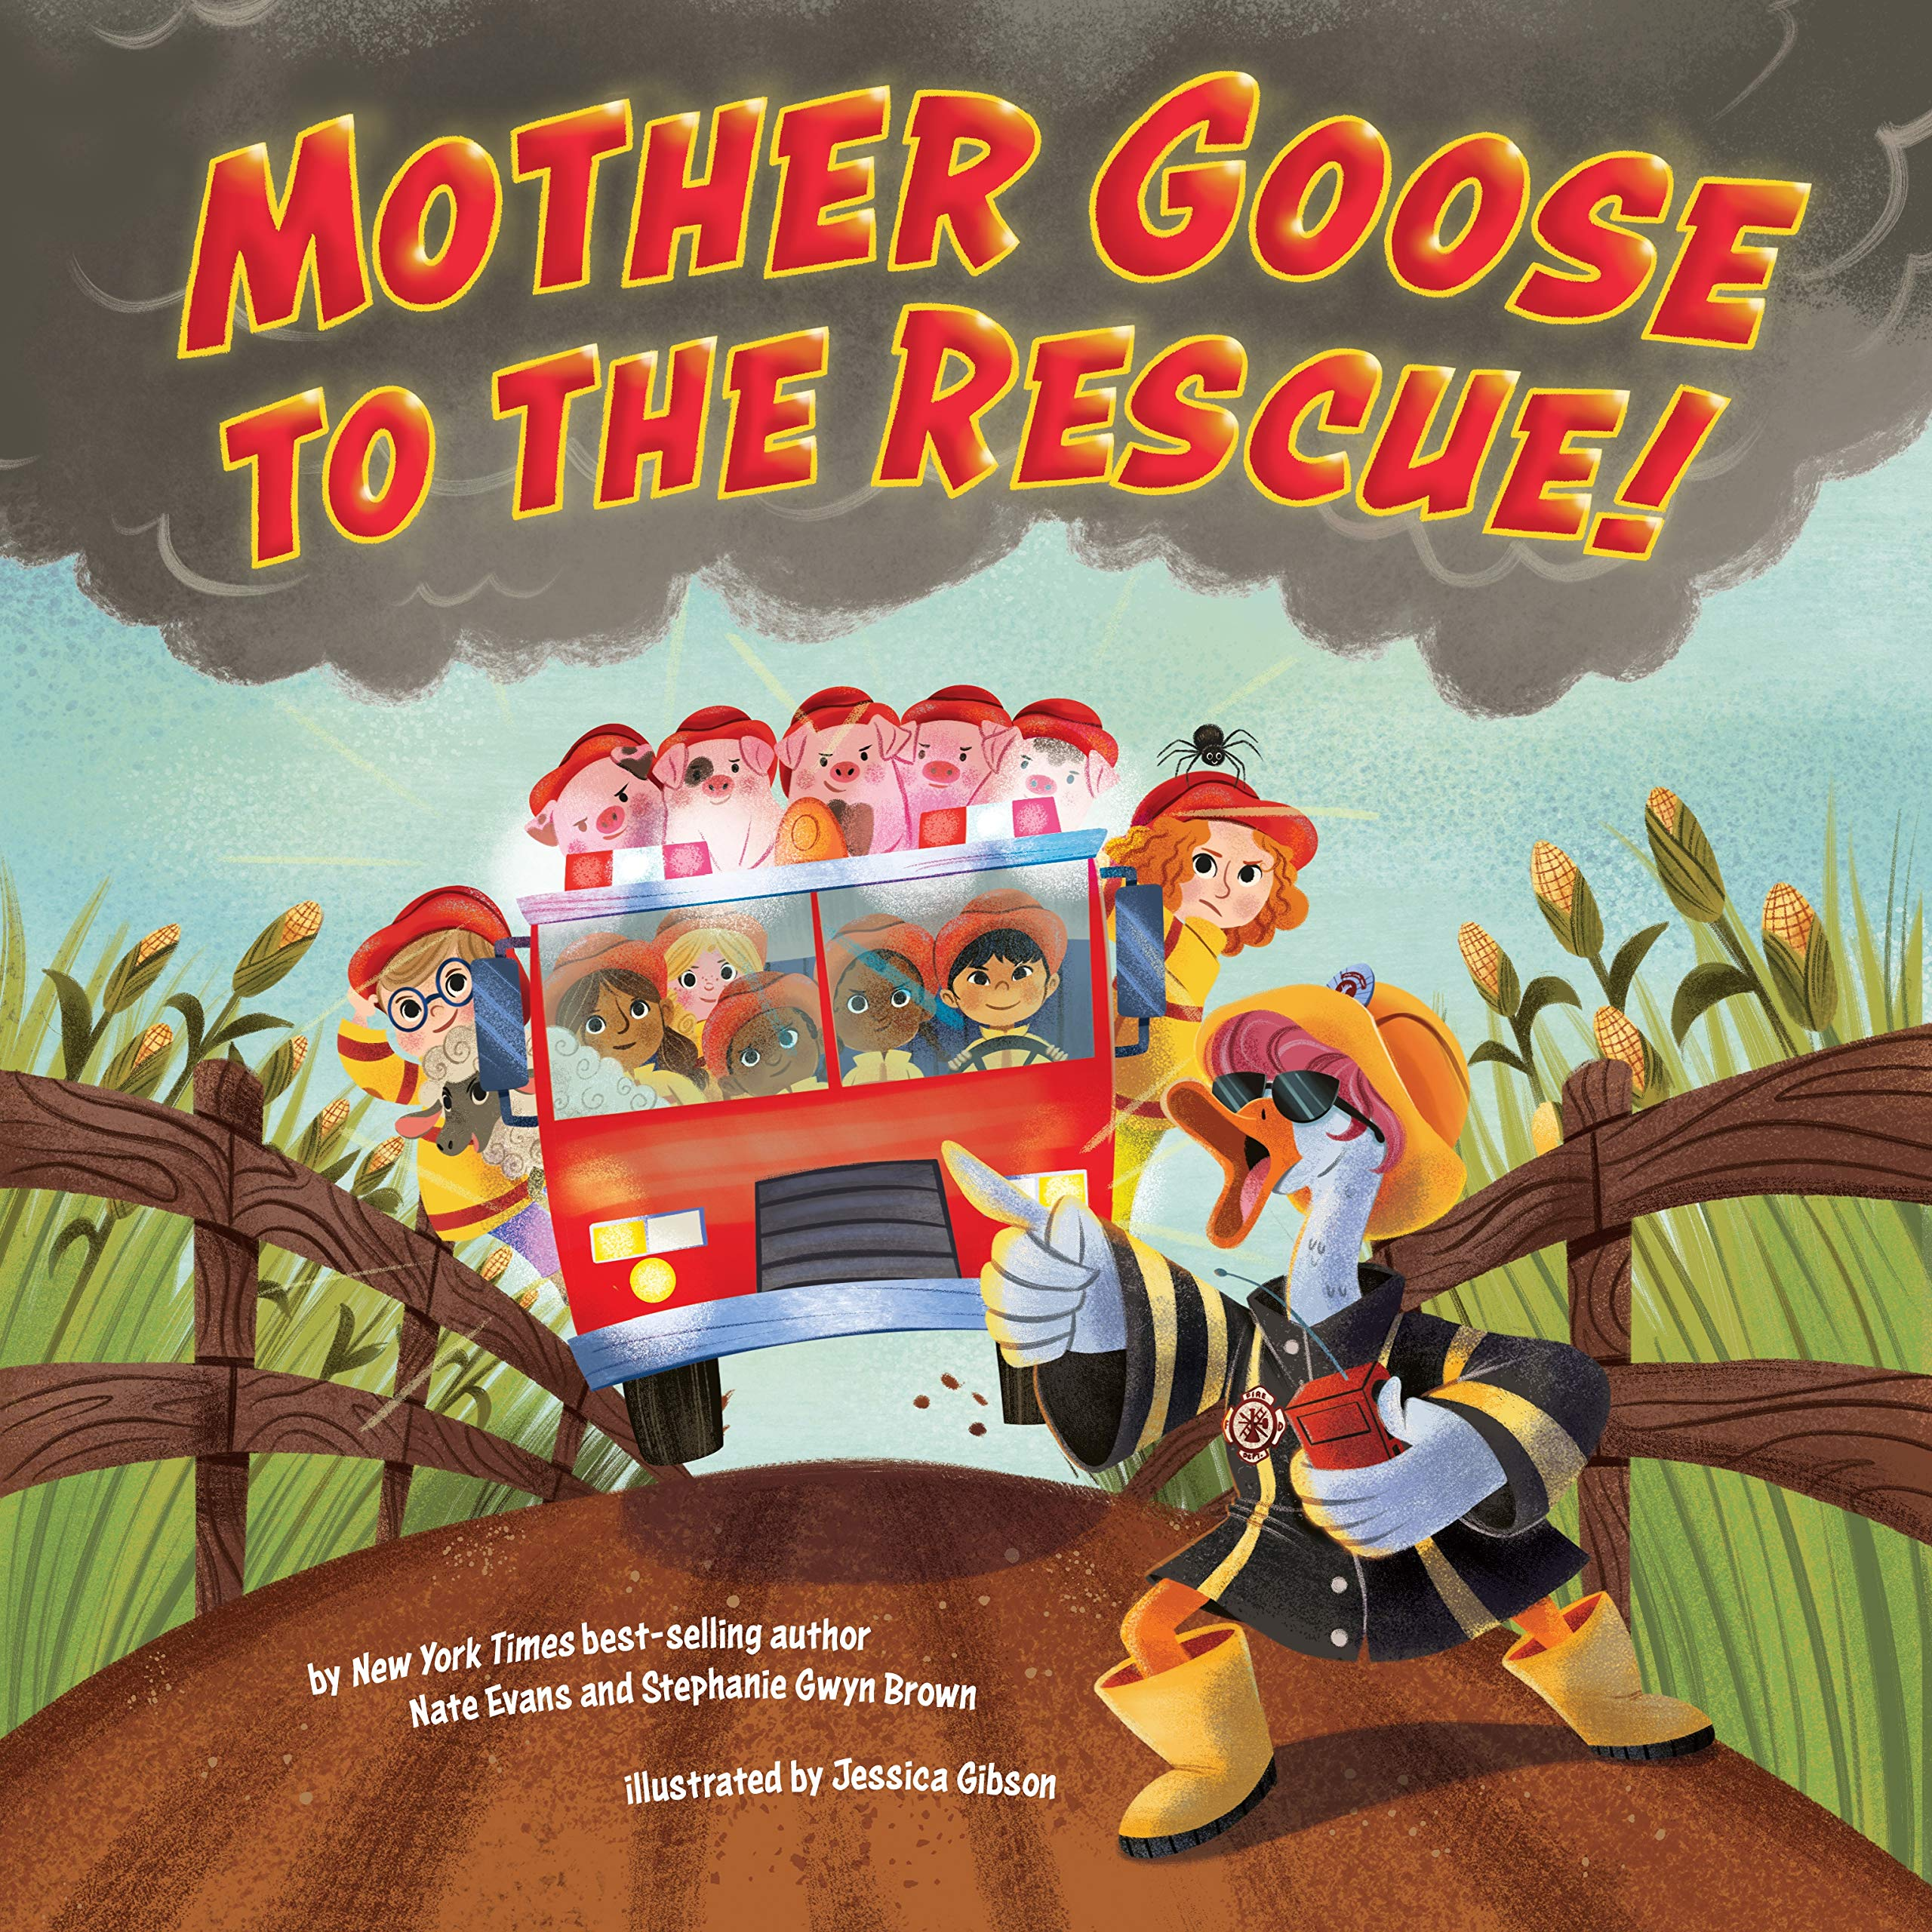 Amazon.com: Mother Goose to the Rescue! (9780593093573): Evans, Nate,  Brown, Stephanie Gwyn, Gibson, Jessica: Books